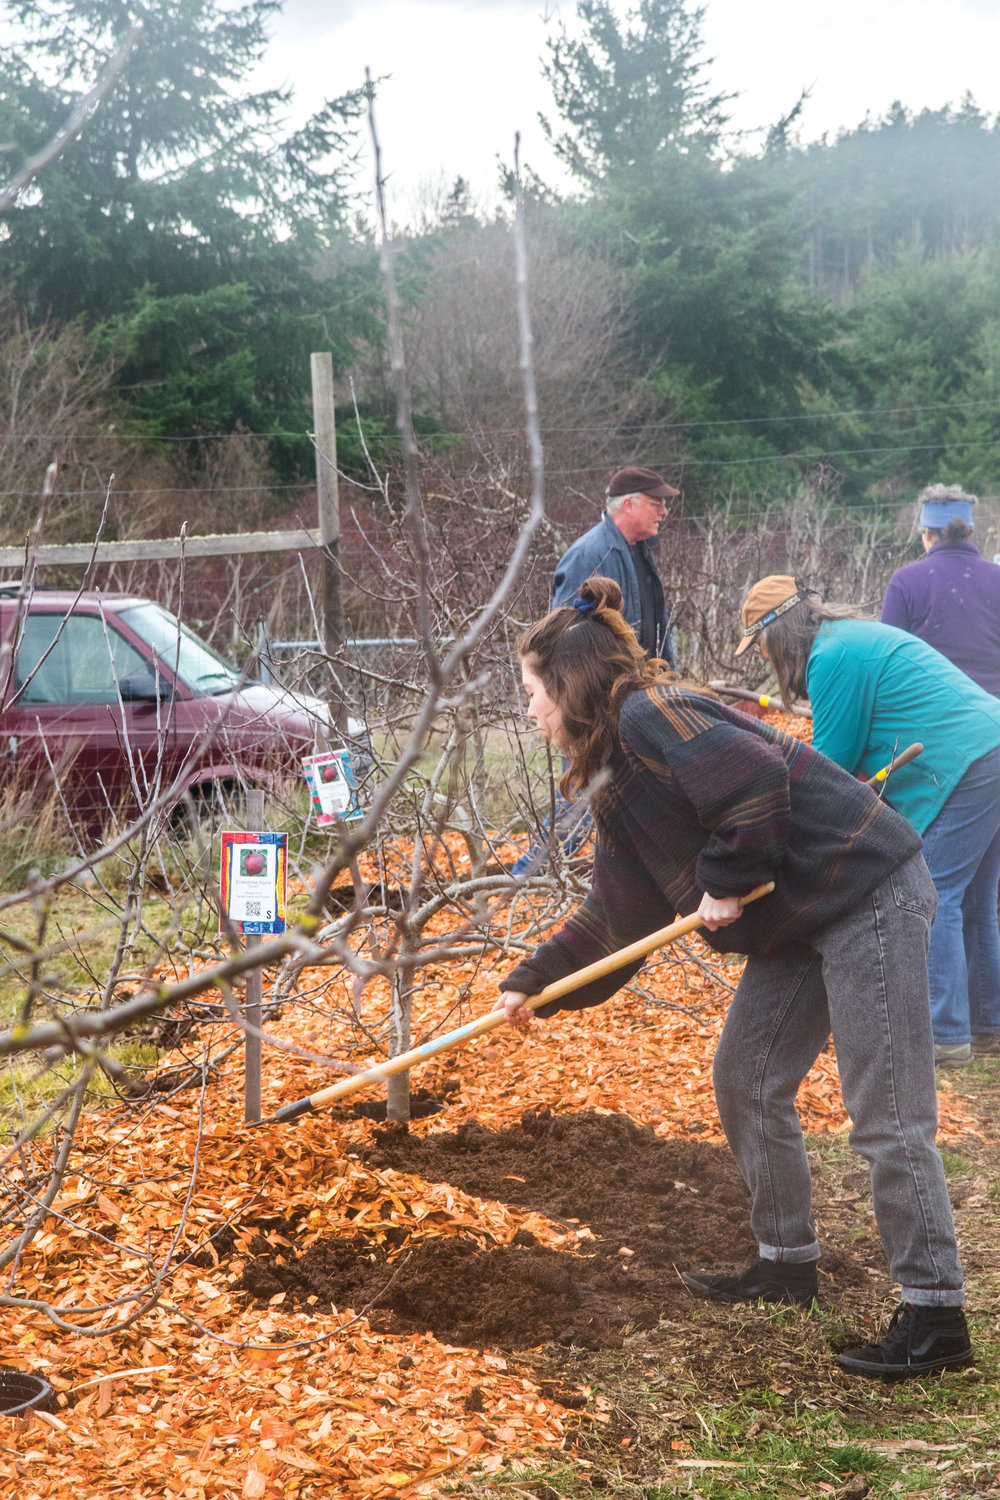 Port Townsend High School senior Caitlyn Bedolla rakes wood chips on the tree beds.